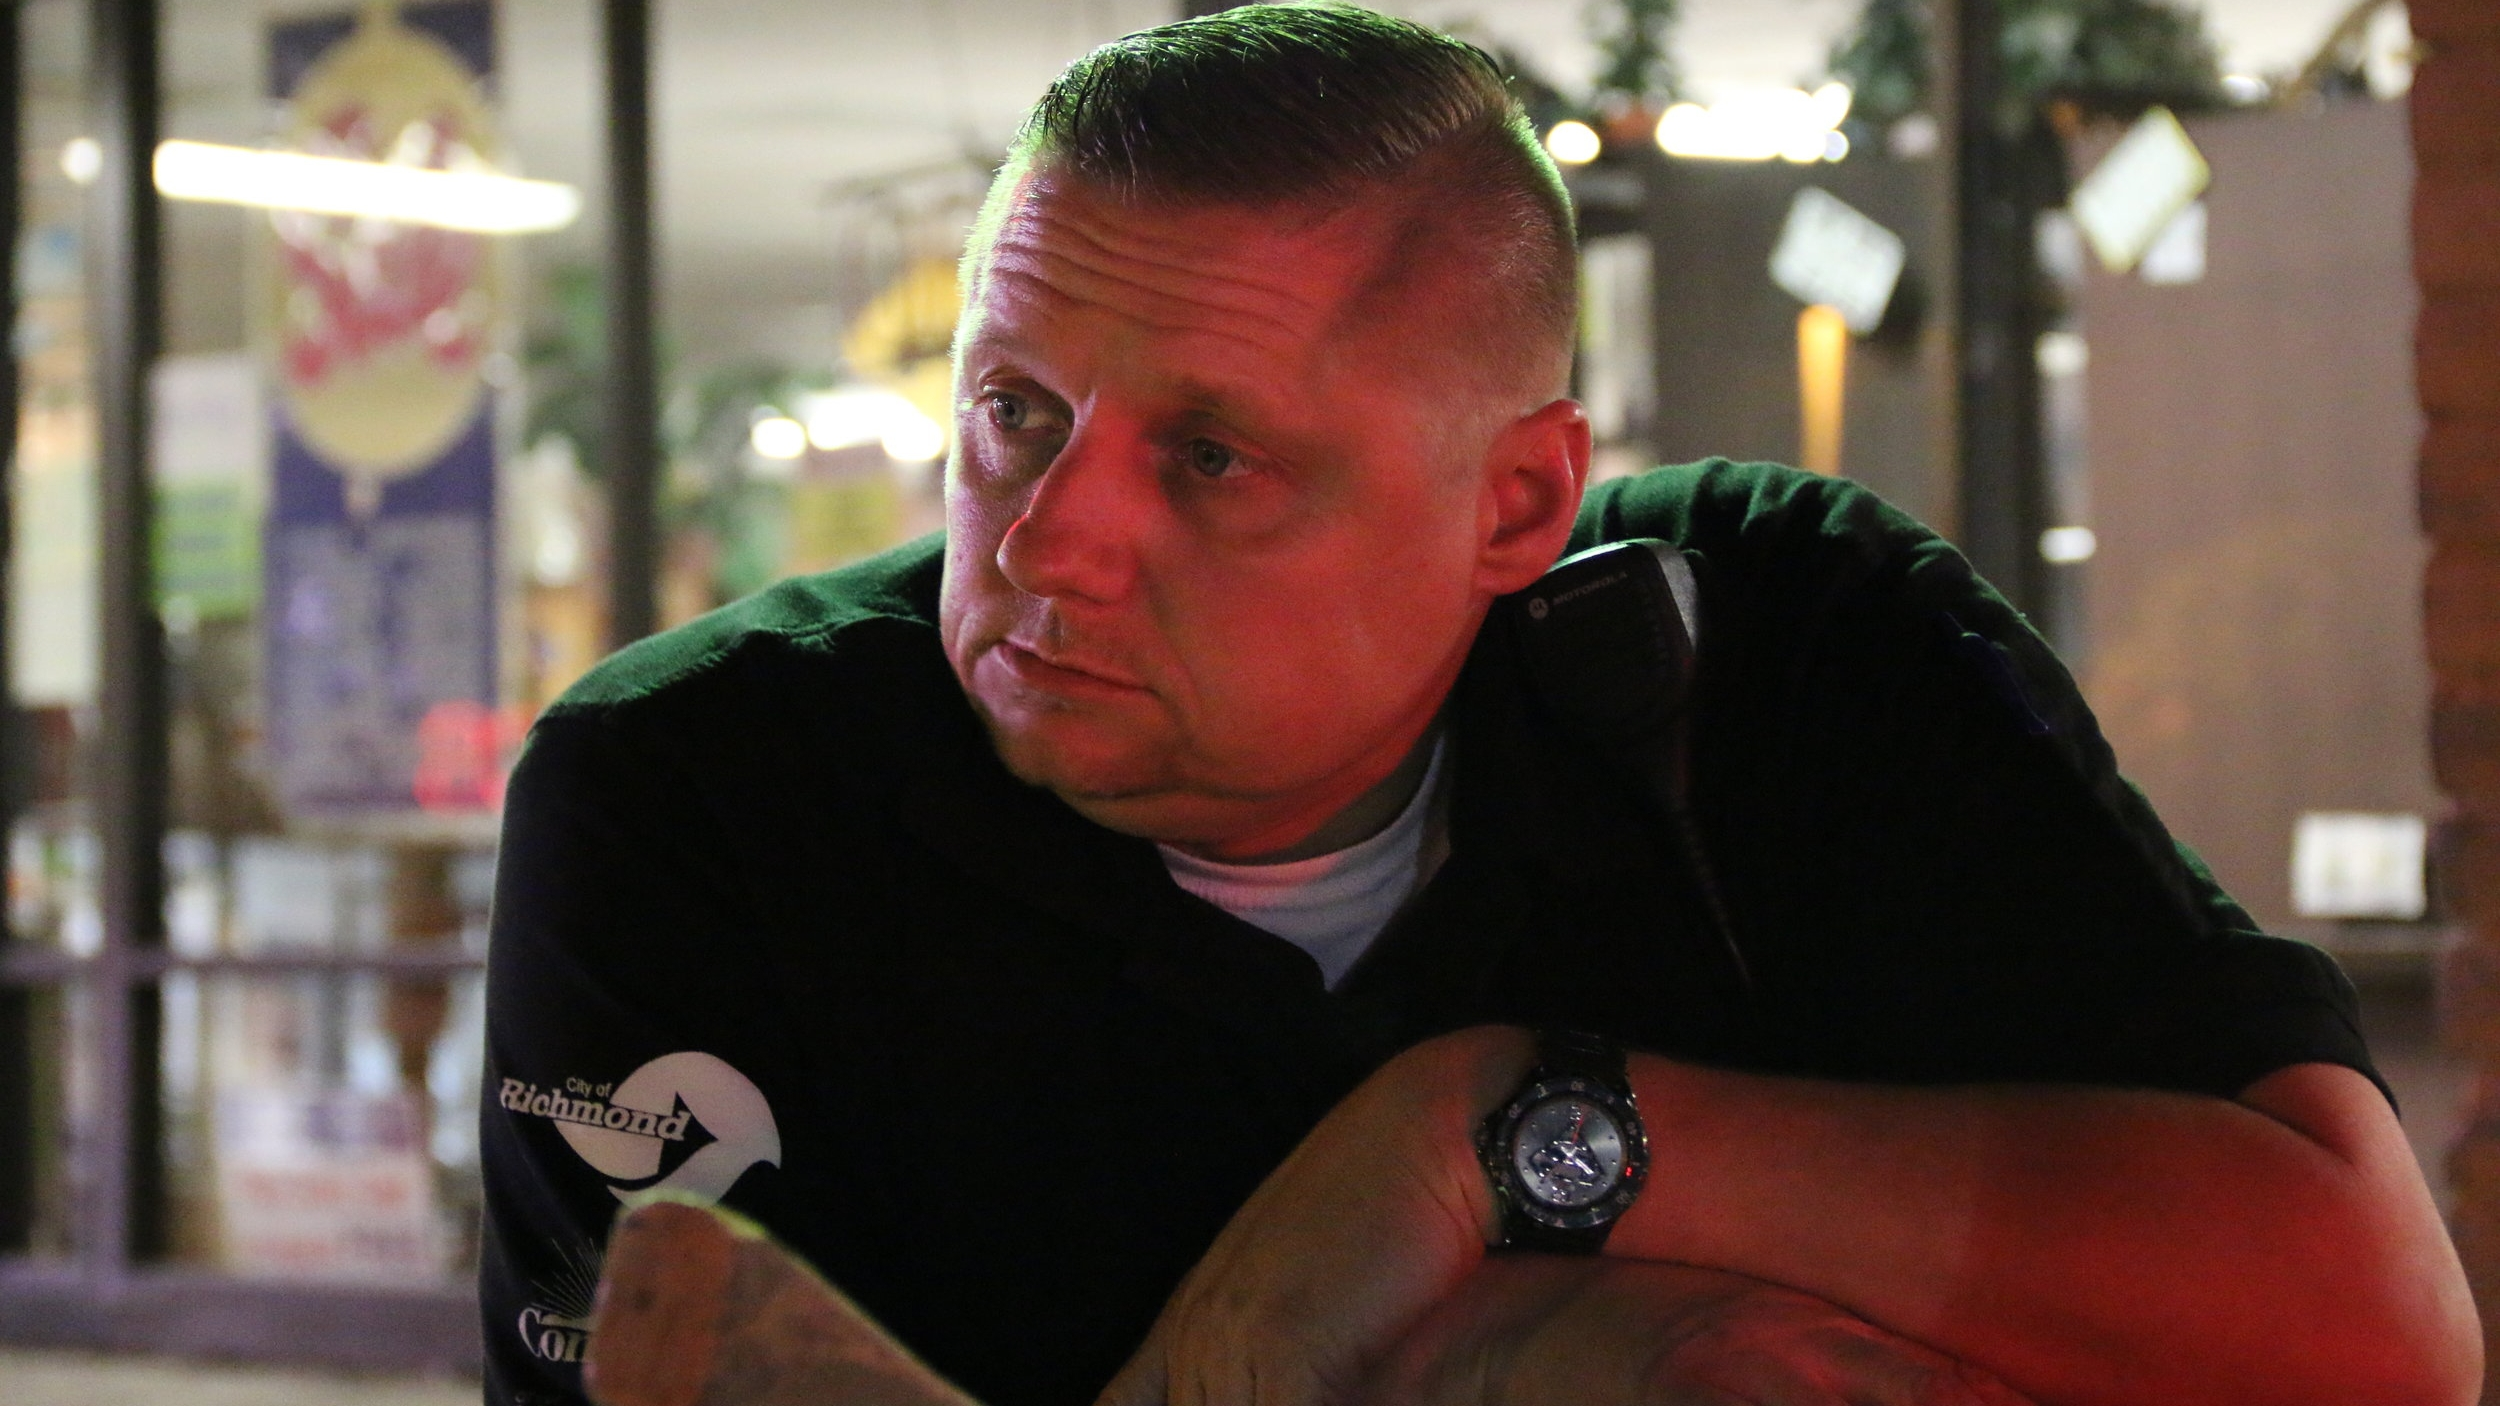 Doug Stewart provided homeless outreach on the streets of Contra Costa County for 12 years. One day he brought a homeless man home.   Subscribe to the full American Suburb series wherever you get your podcasts.